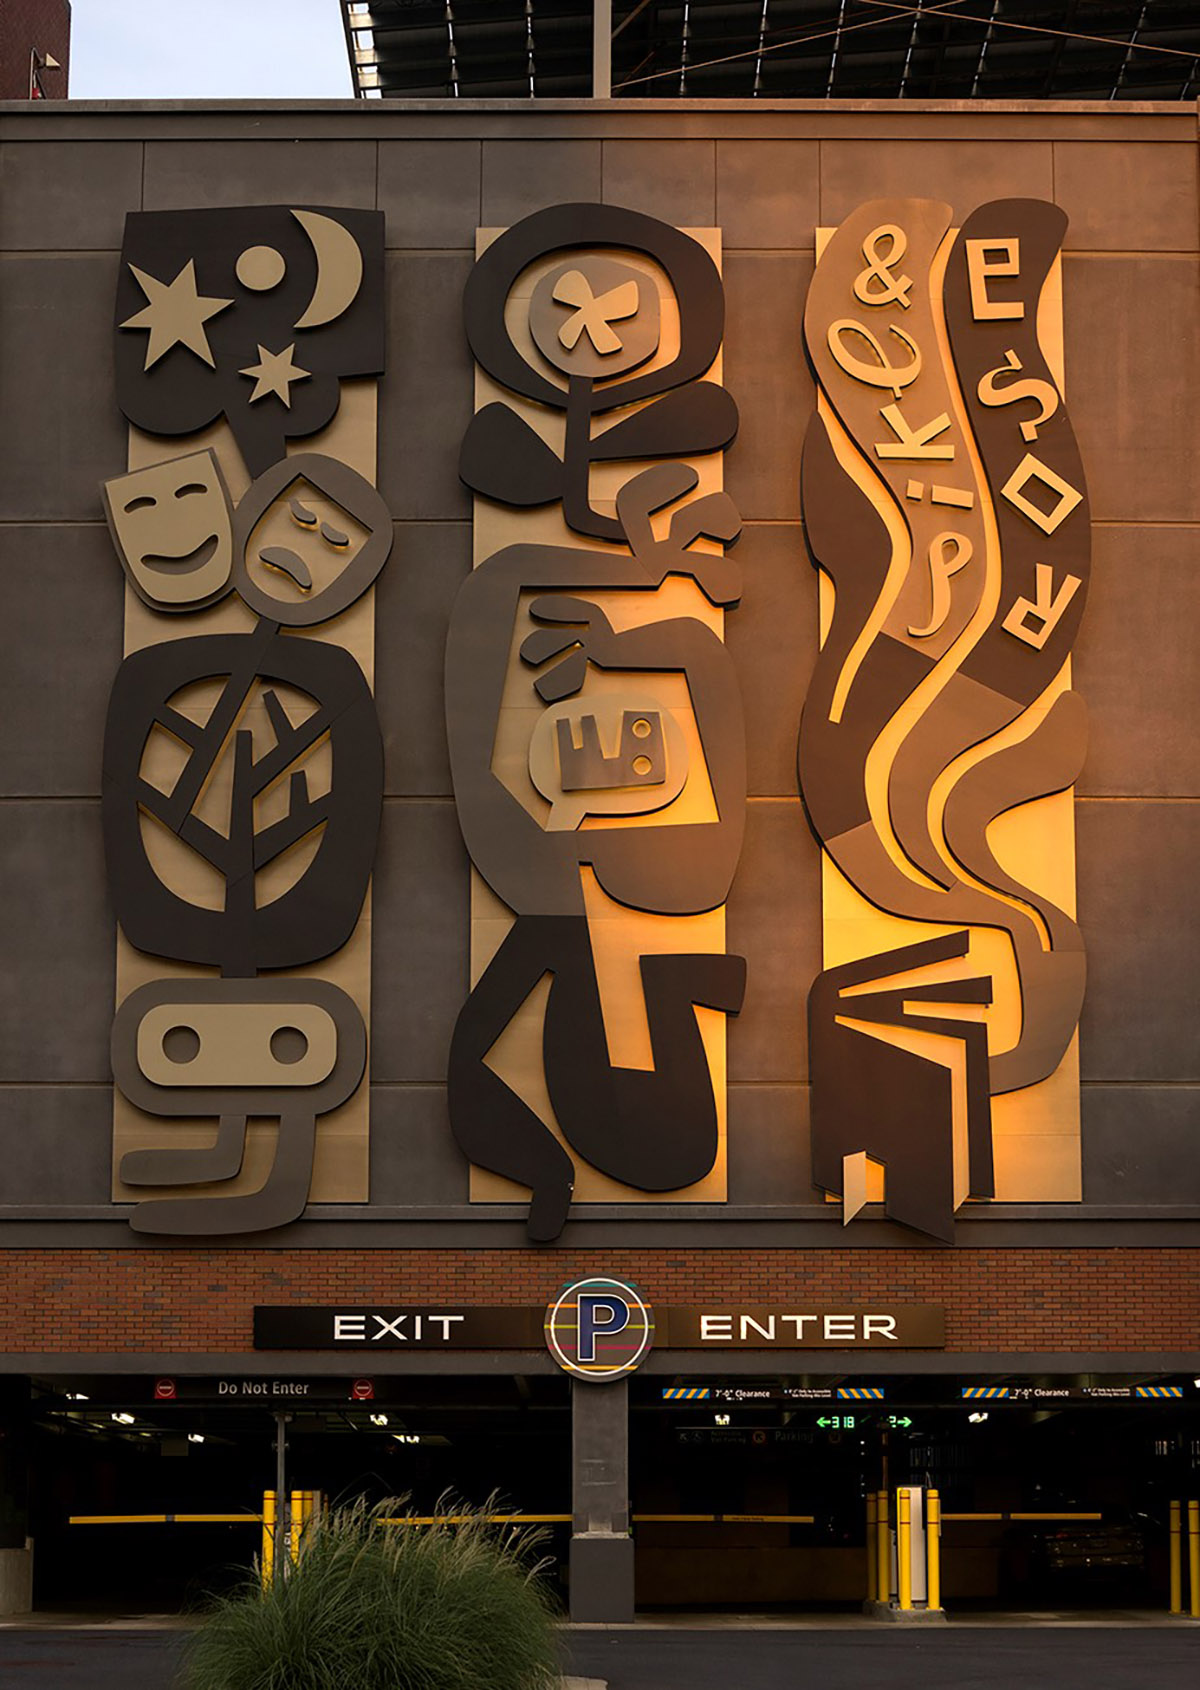 Public art can also be realized in the signage to add color and character to the place. At Pike and Rose, this public art creates the gateway into the public parking garage.